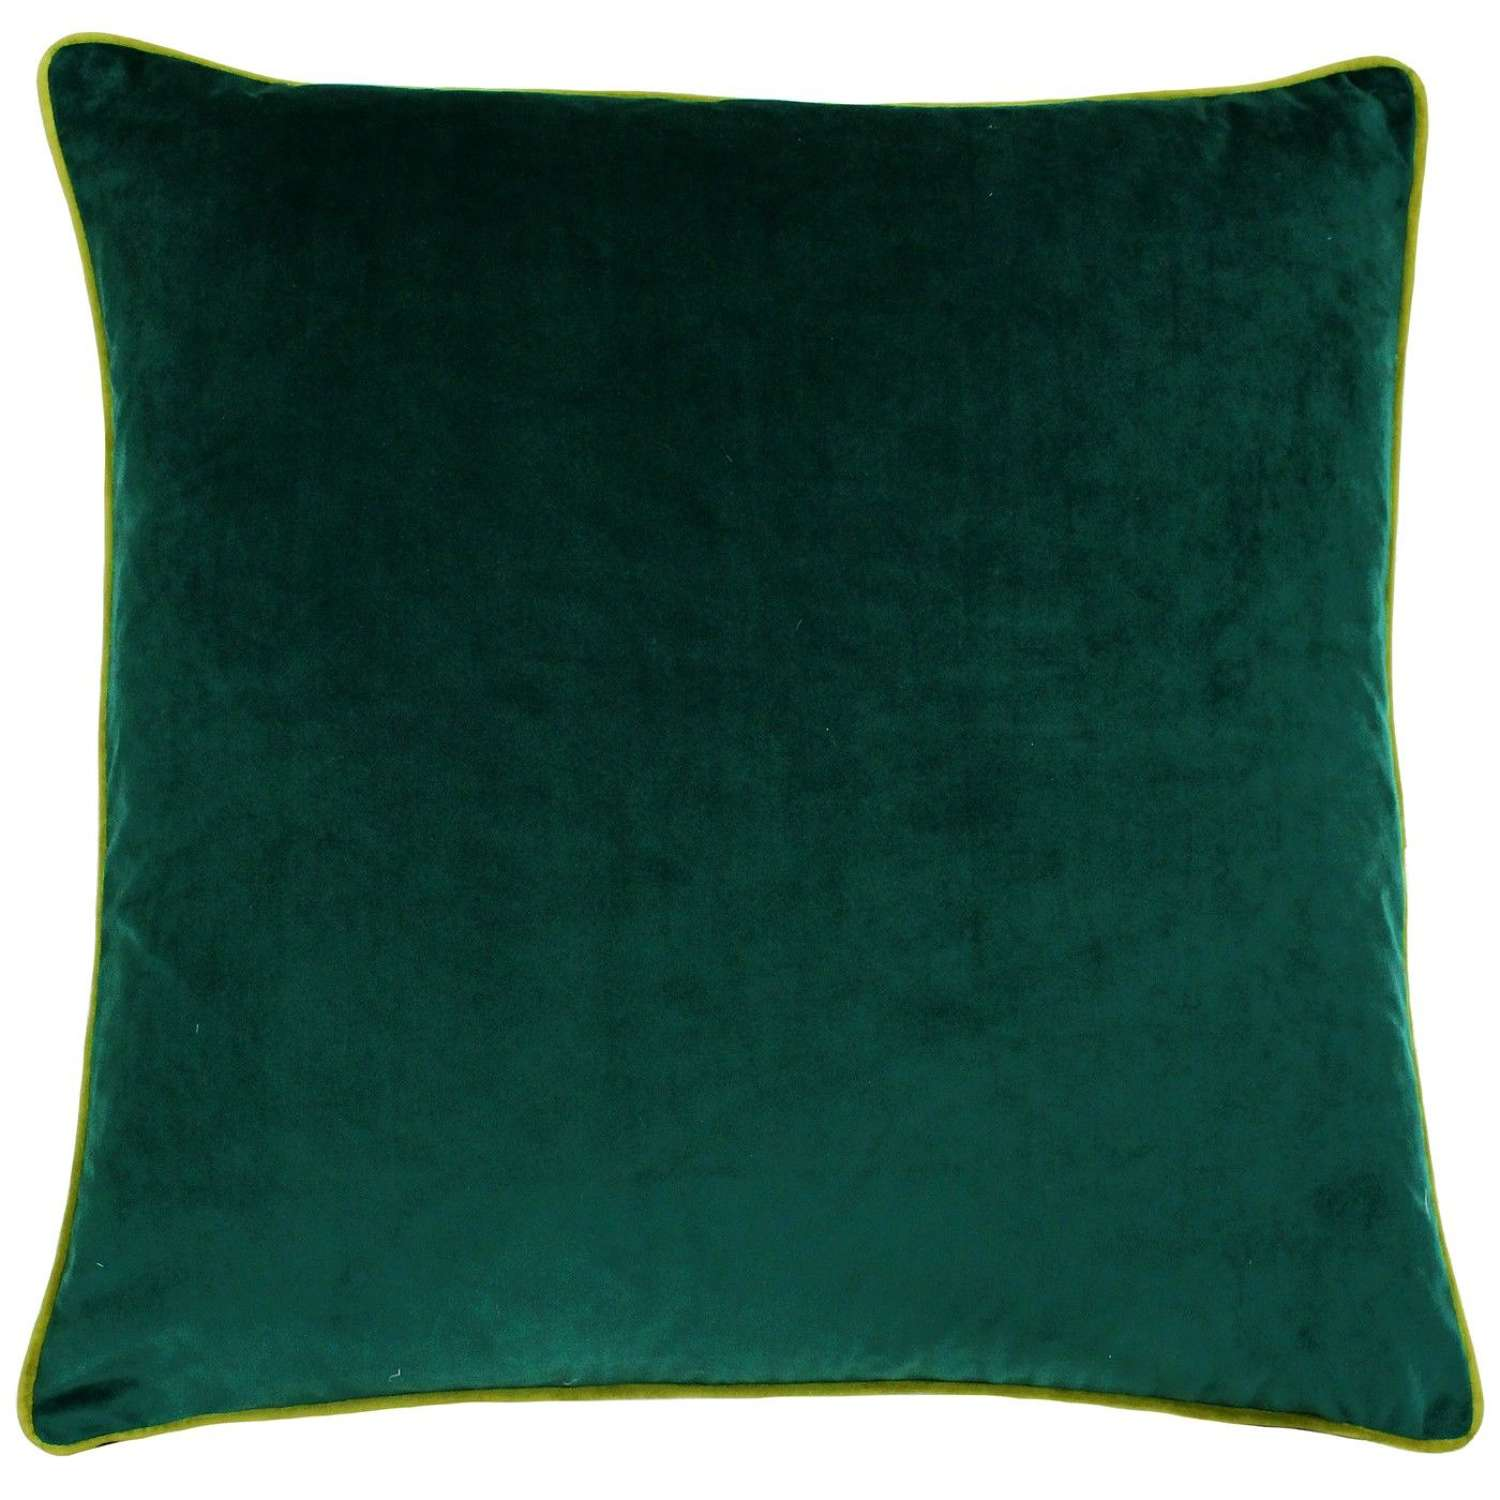 Square Velvet Cushion with Contrast Piping - Forest/Moss